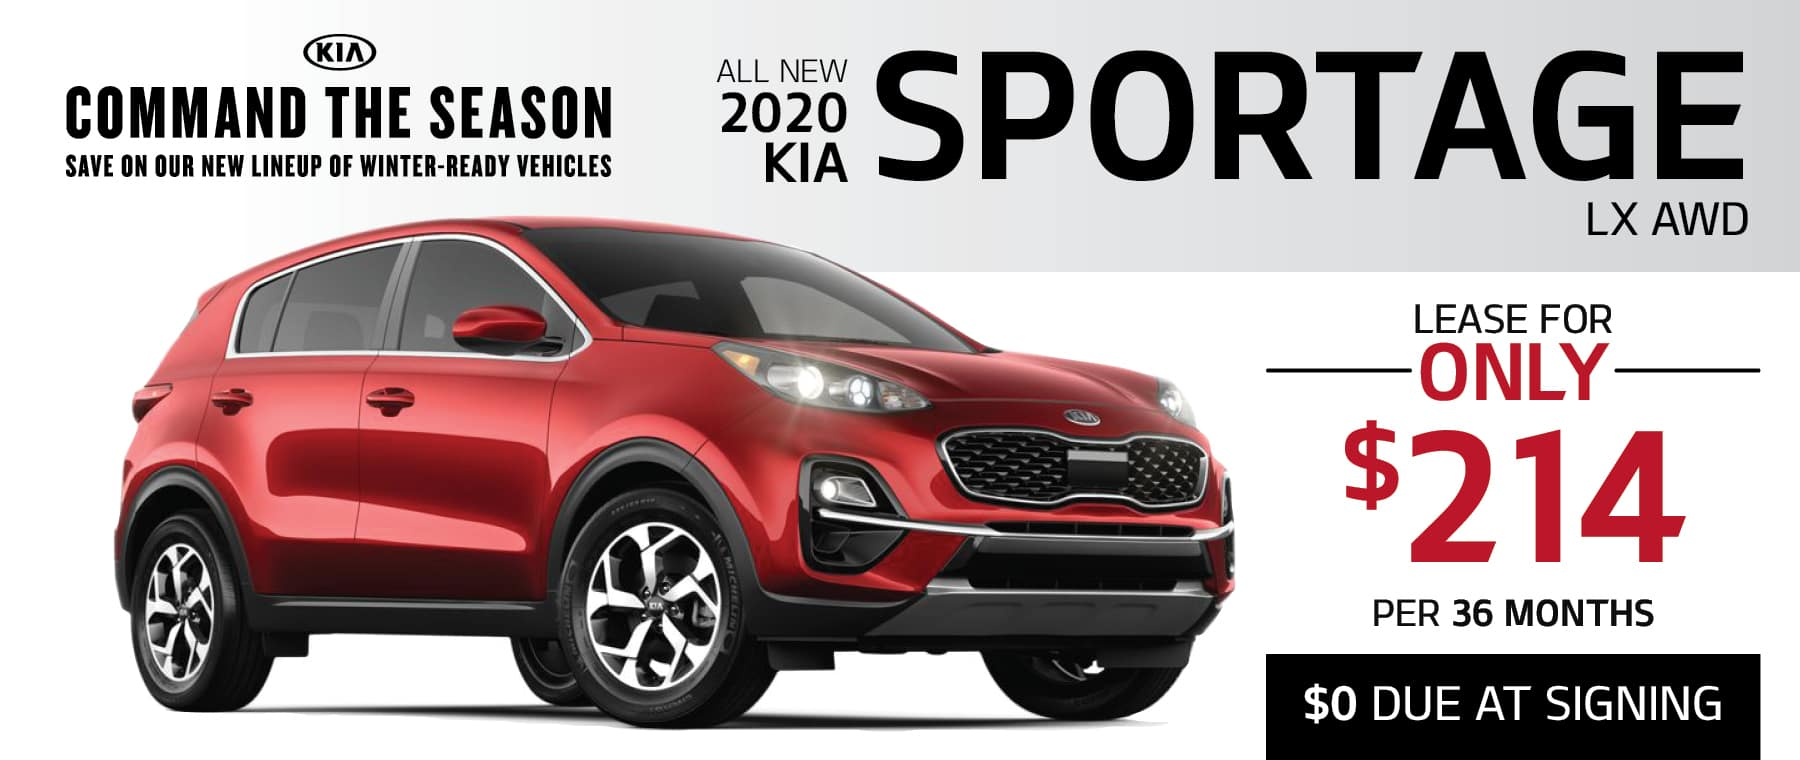 2020 KIA Sportage Lease for only $214 per month